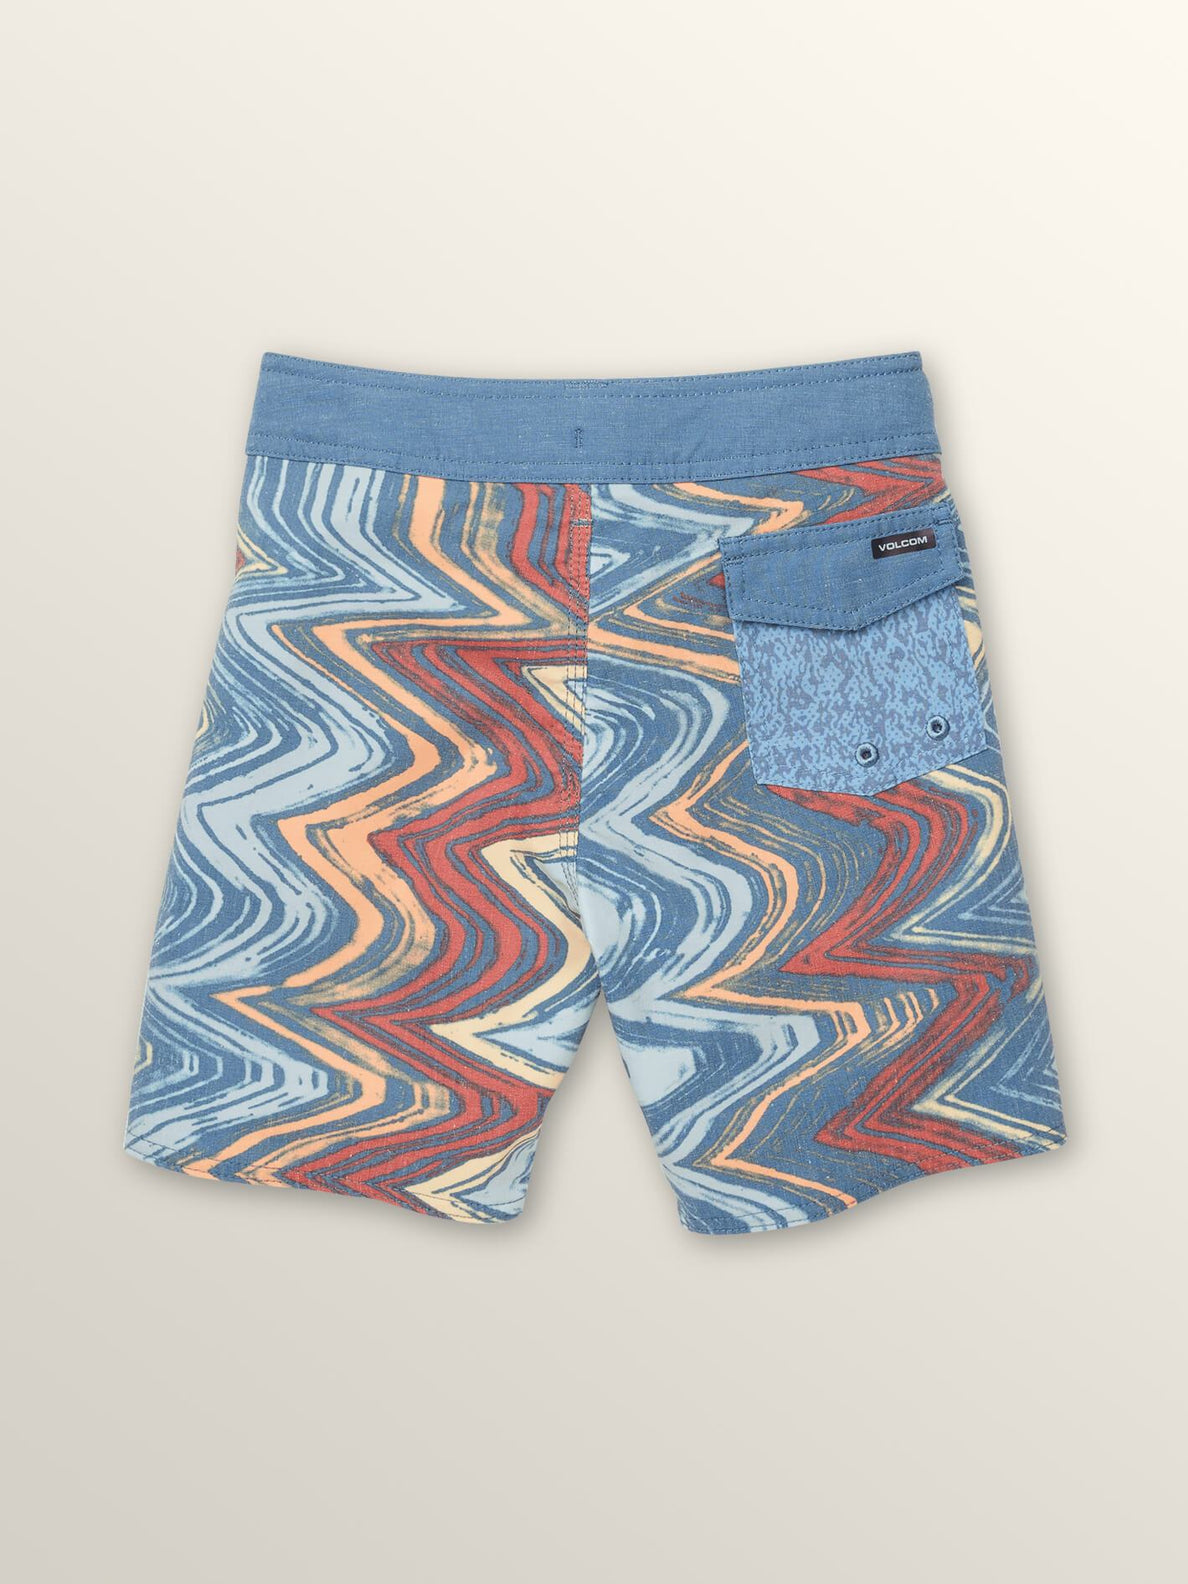 Little Boys Lo Fi Boardshorts In Sunburst, Back View